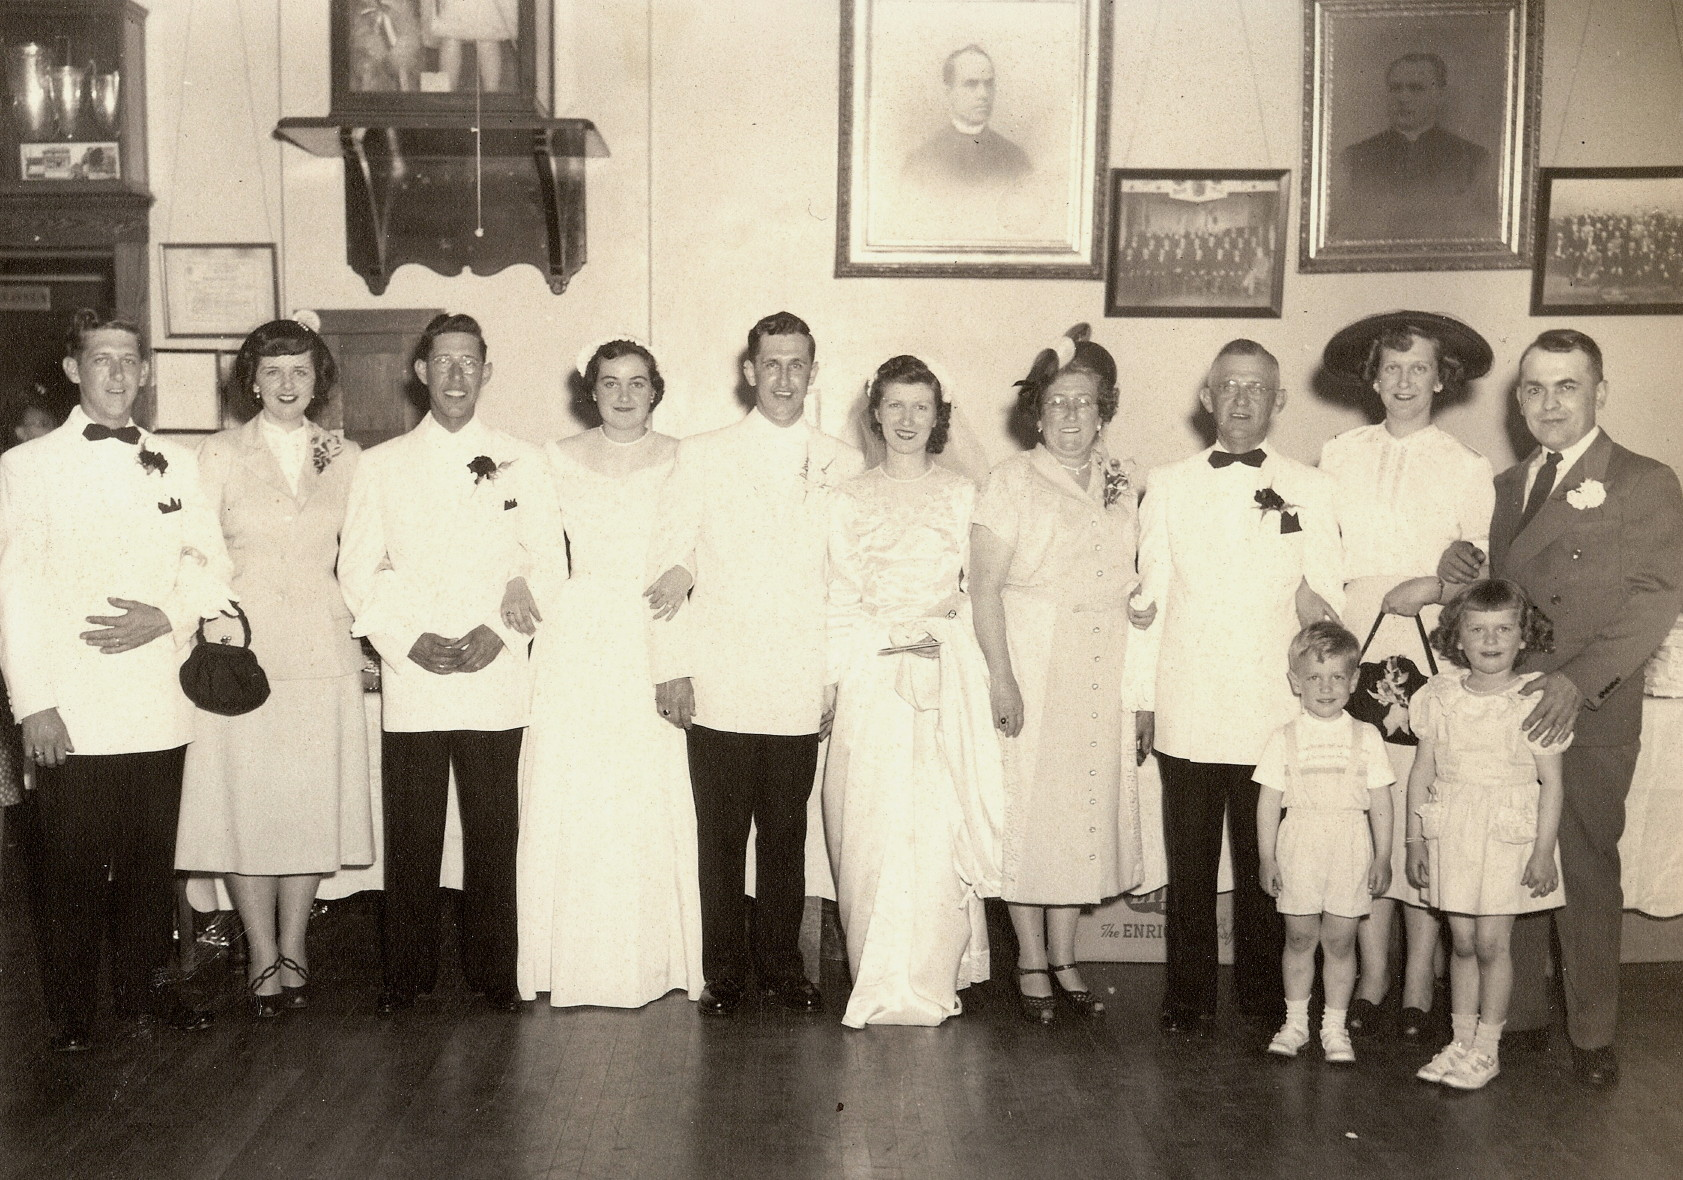 Wedding of Ron's parents, Adelard and Theresa, 1951.  (L-R): George Gagnon (Adelard's youngest son), Norma (George's wife), Edward Gagnon (Adelard's oldest son), Lucille (Edward's wife), Adelard A. Gagnon (Adelard's second oldest son and Ron's father), Theresa (Adelard's bride), Maria Gagnon (Adelard's wife), Adelard Gagnon, Malvina Gagnon Nolet (Adelard's only daughter), Leo (Malvina's husband), and Leo and Sharleen (Malvina's children).